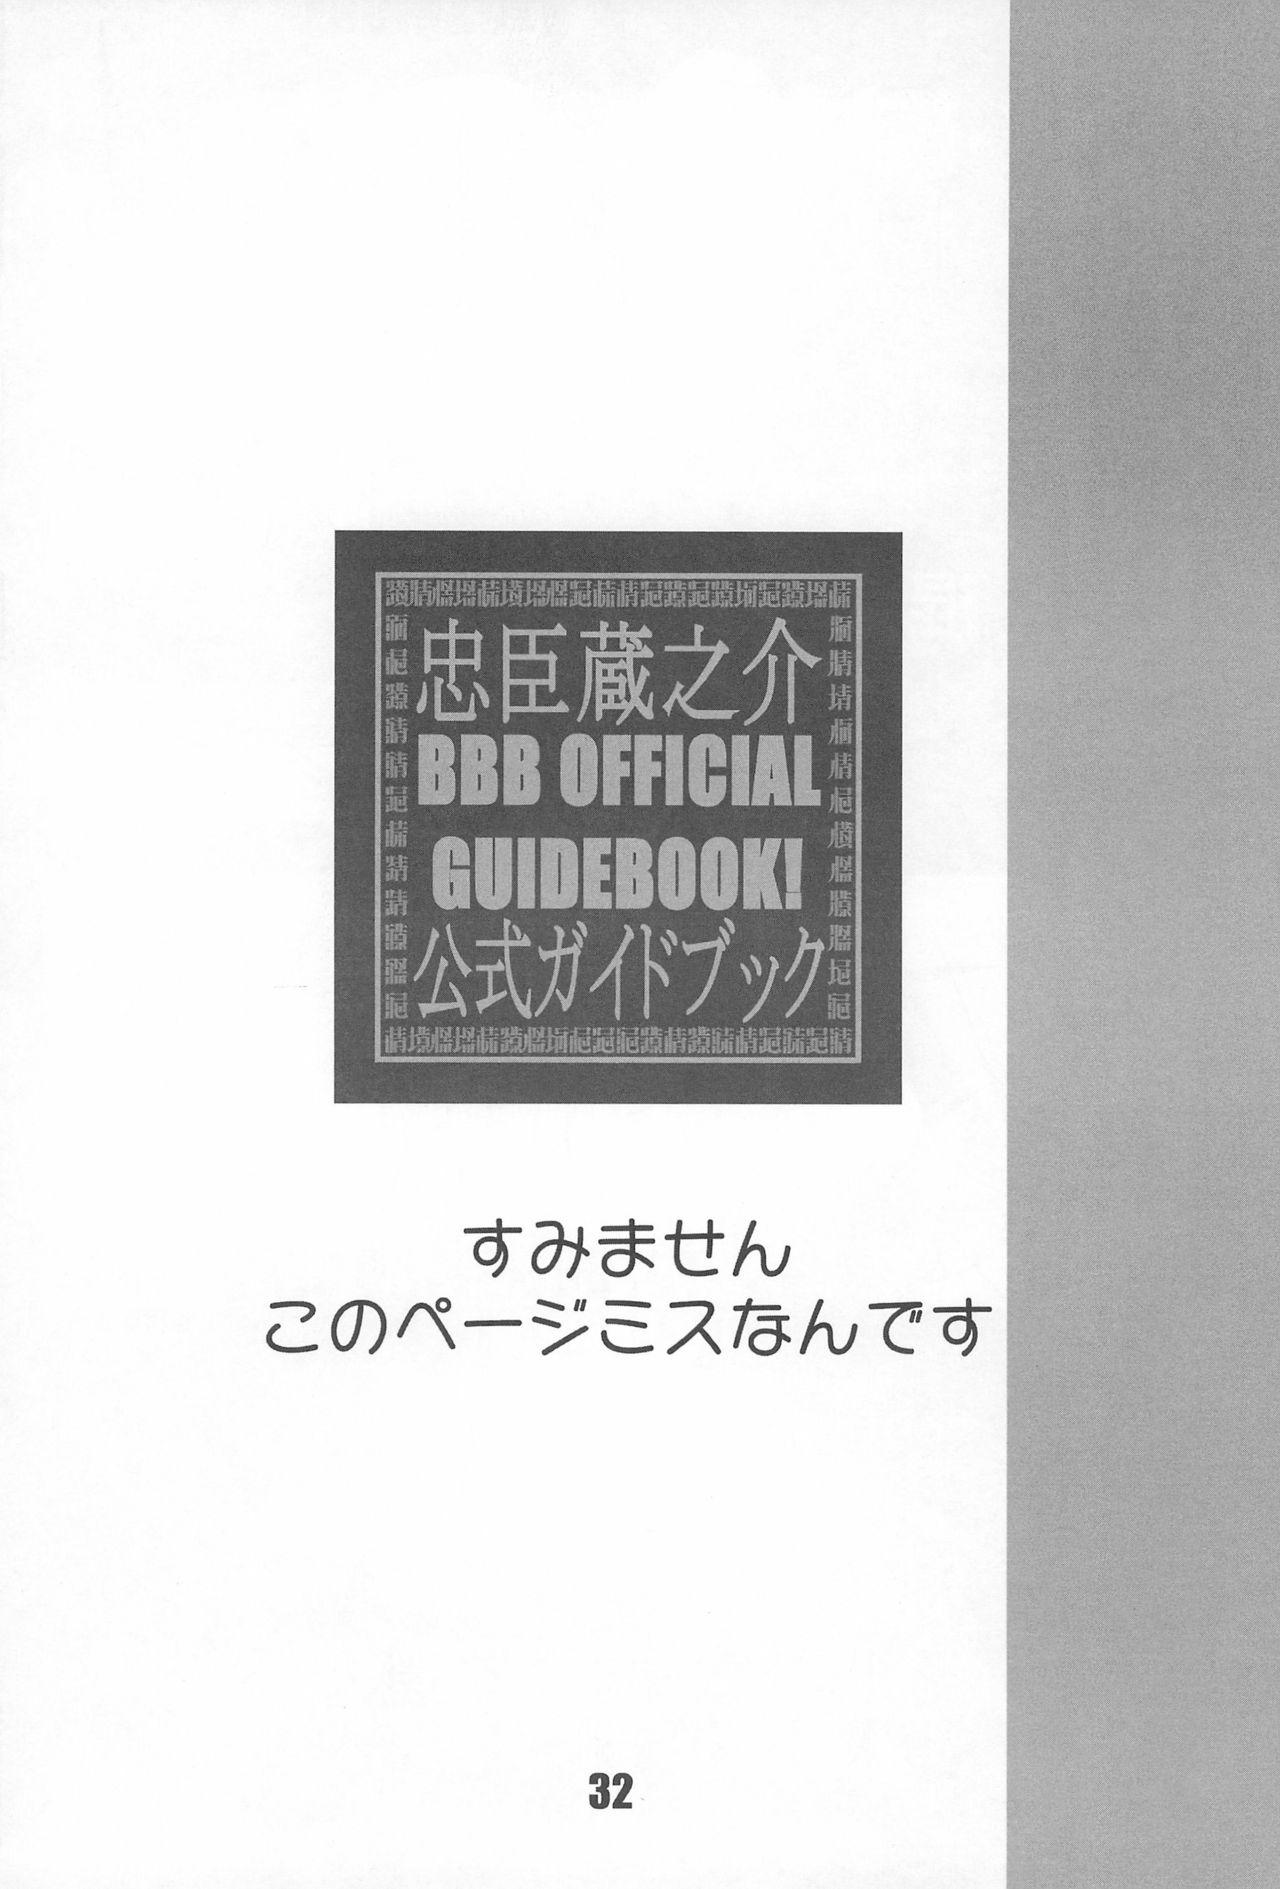 BBB OFFICIAL GUIDE BOOK 31